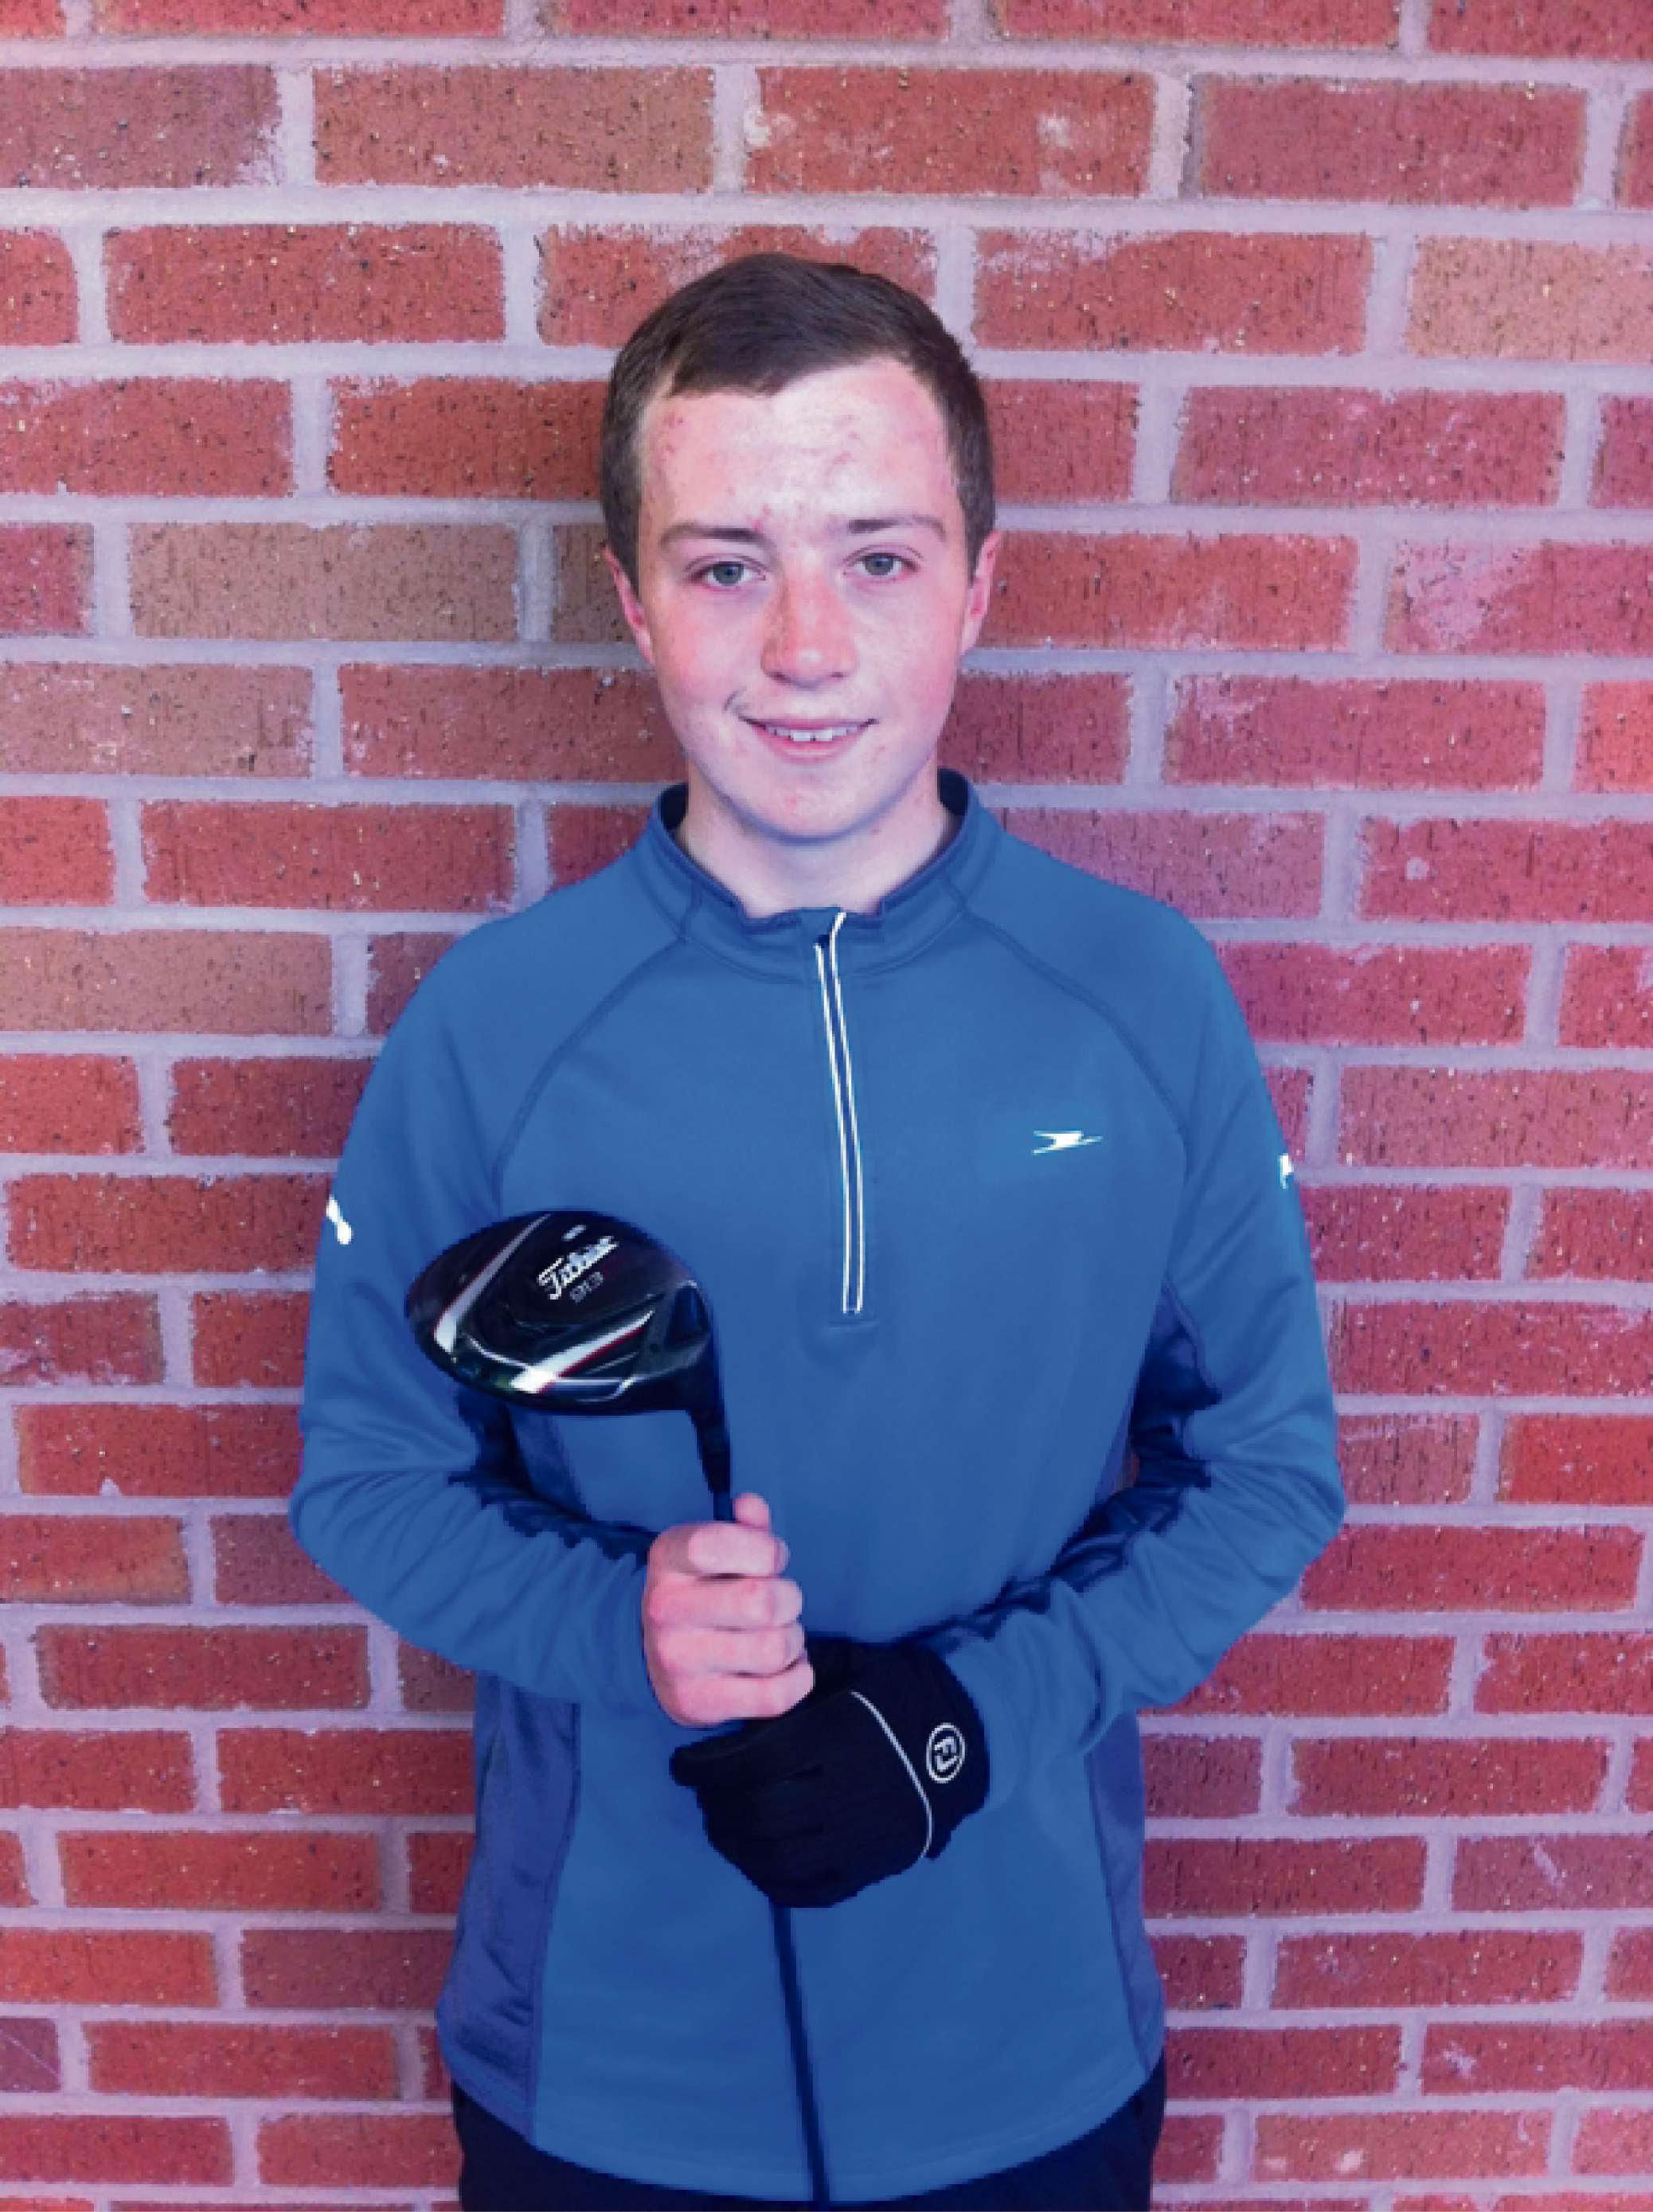 Stourbridge's Jake Walley will now travel to Spain for the final of the Andalucia Junior Open.